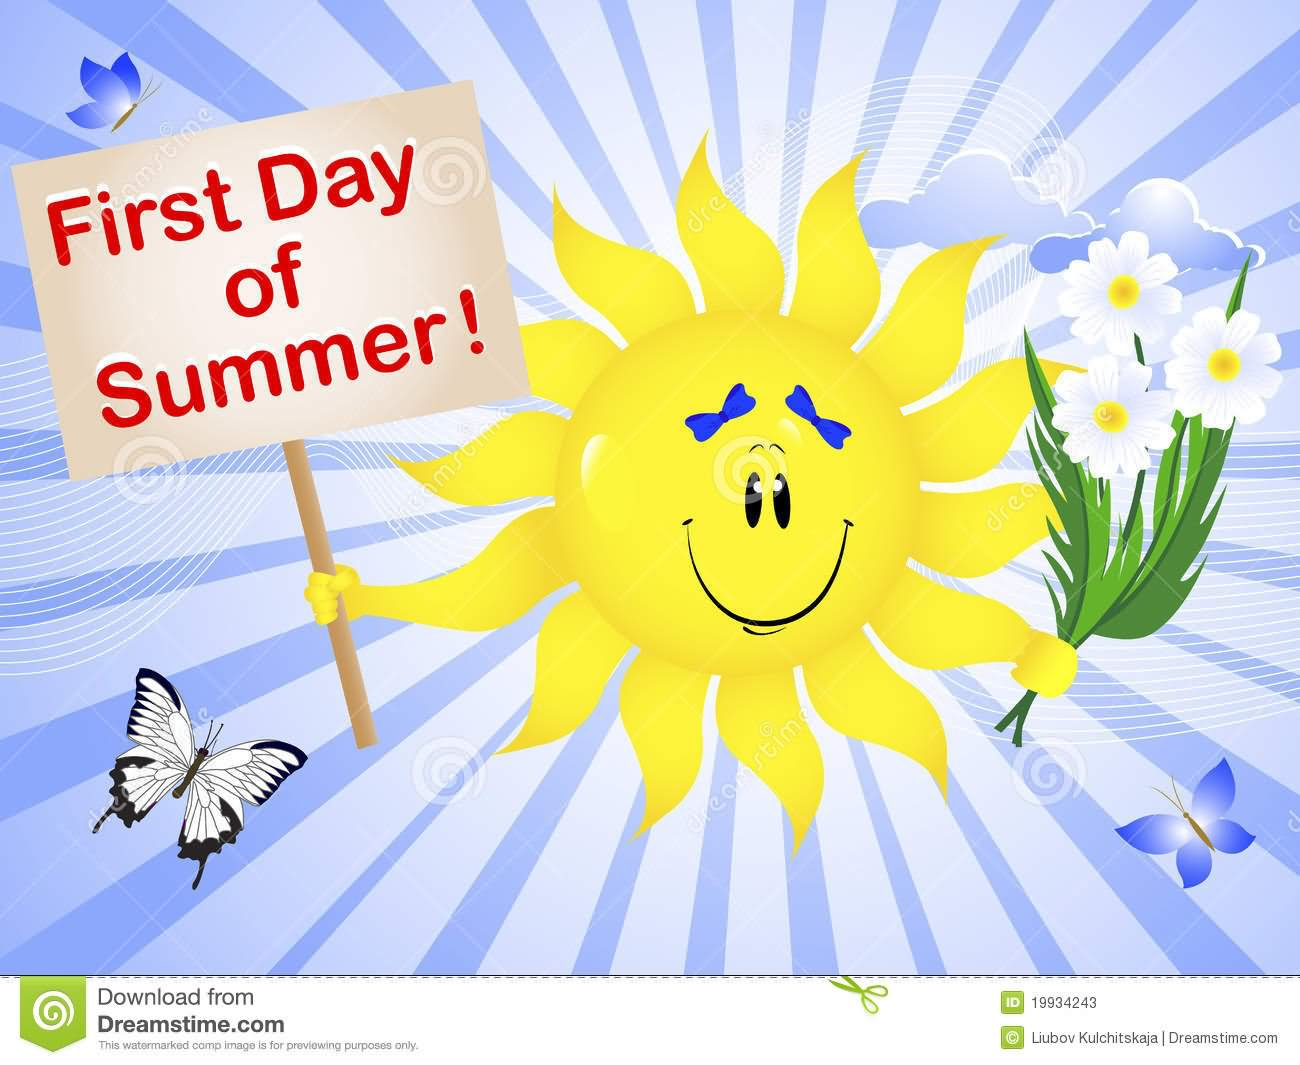 First day of summer clipart images png freeuse 50 Best First Day Of Summer Wishes Pictures And Photos png freeuse